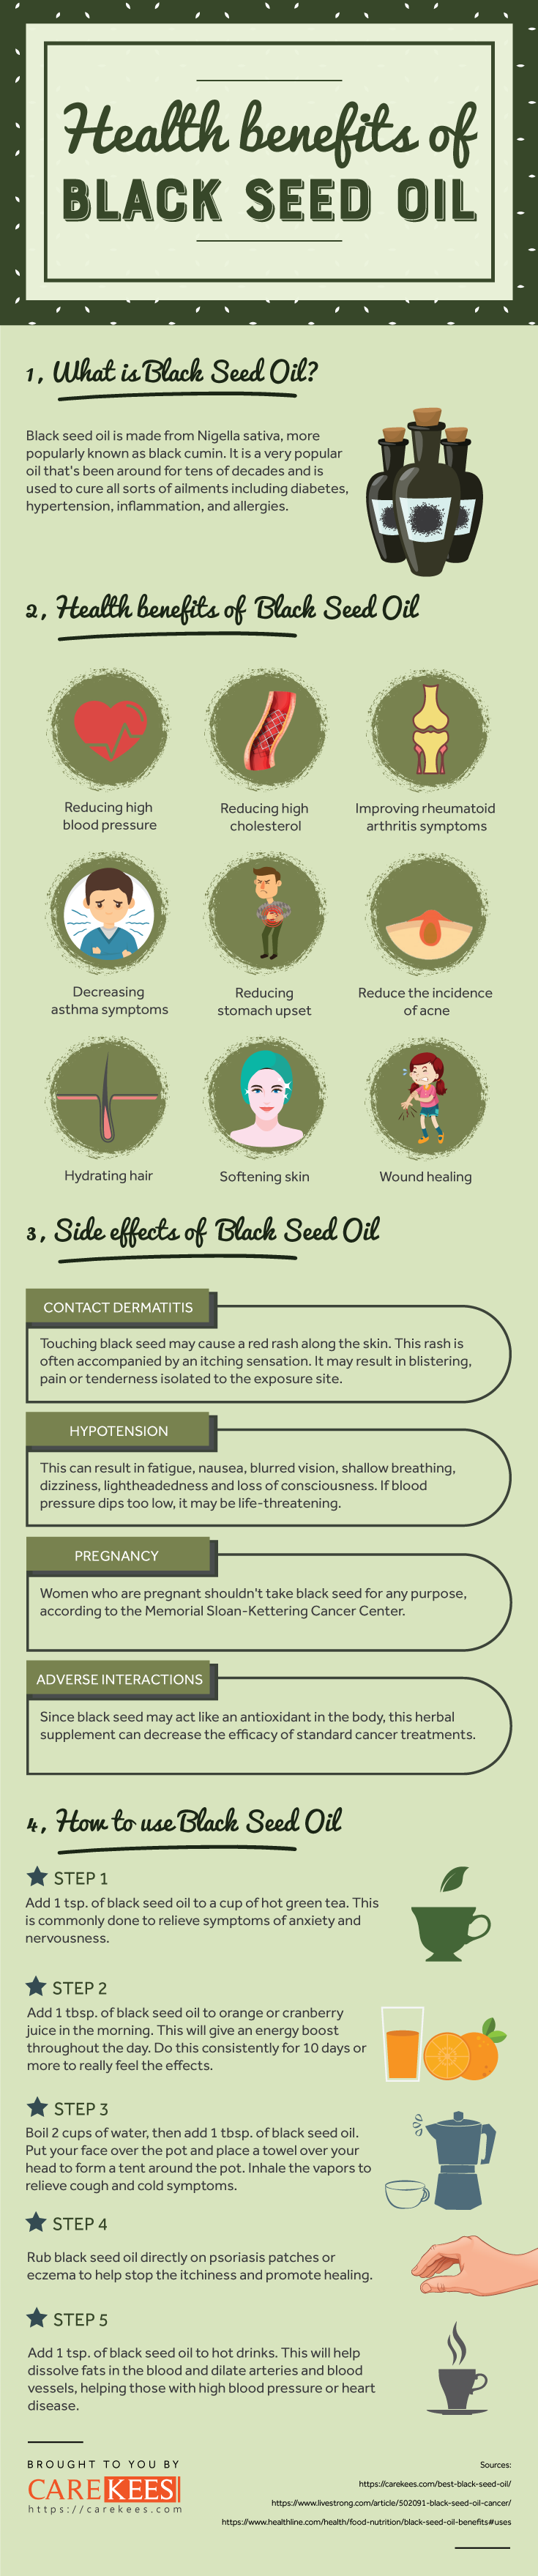 best black seed oil 1